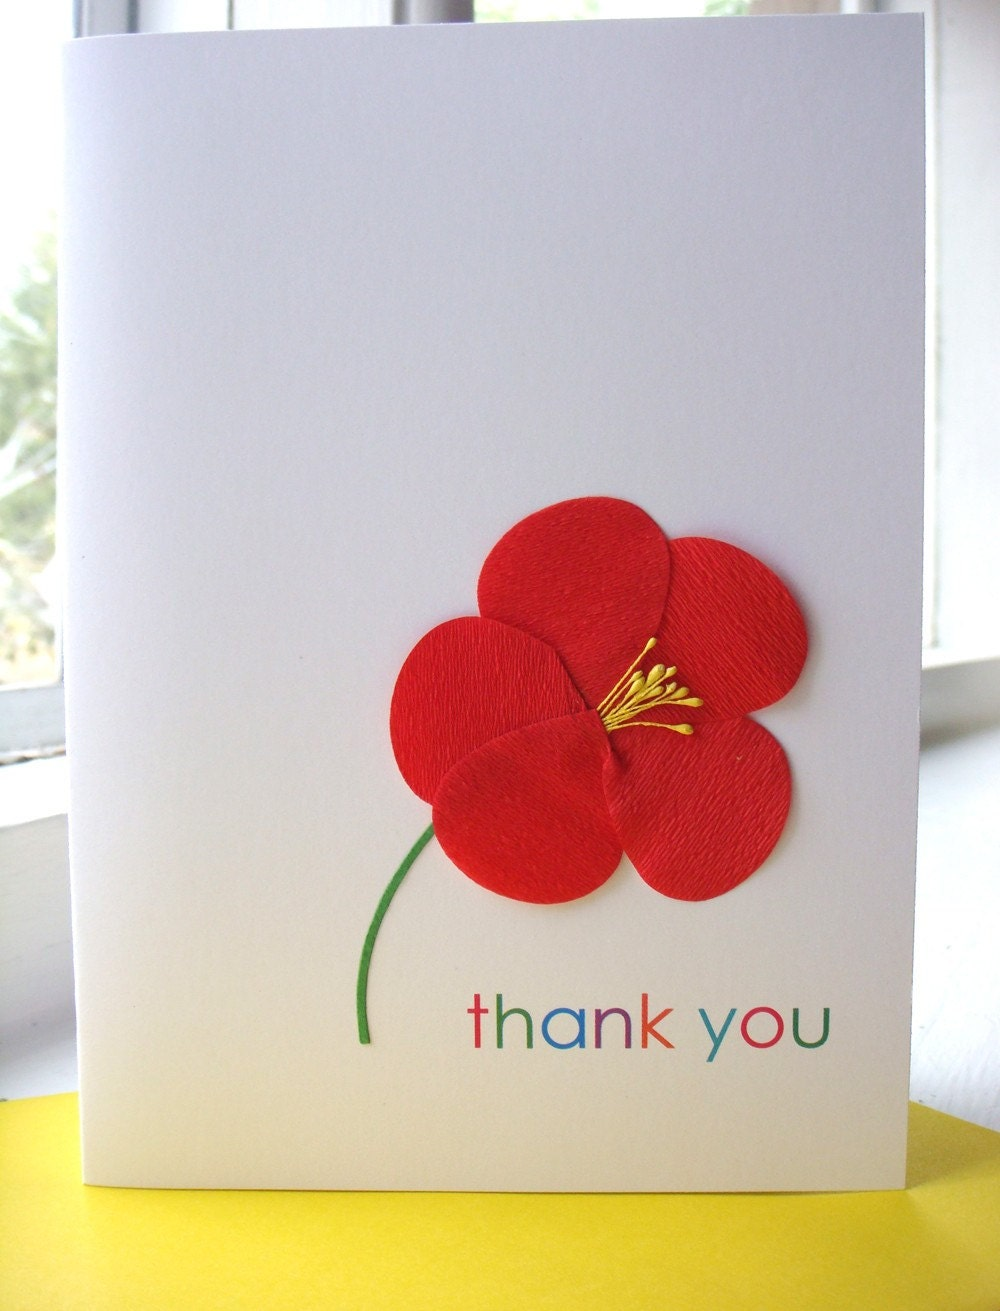 sharing Cheerful Thank You Cards